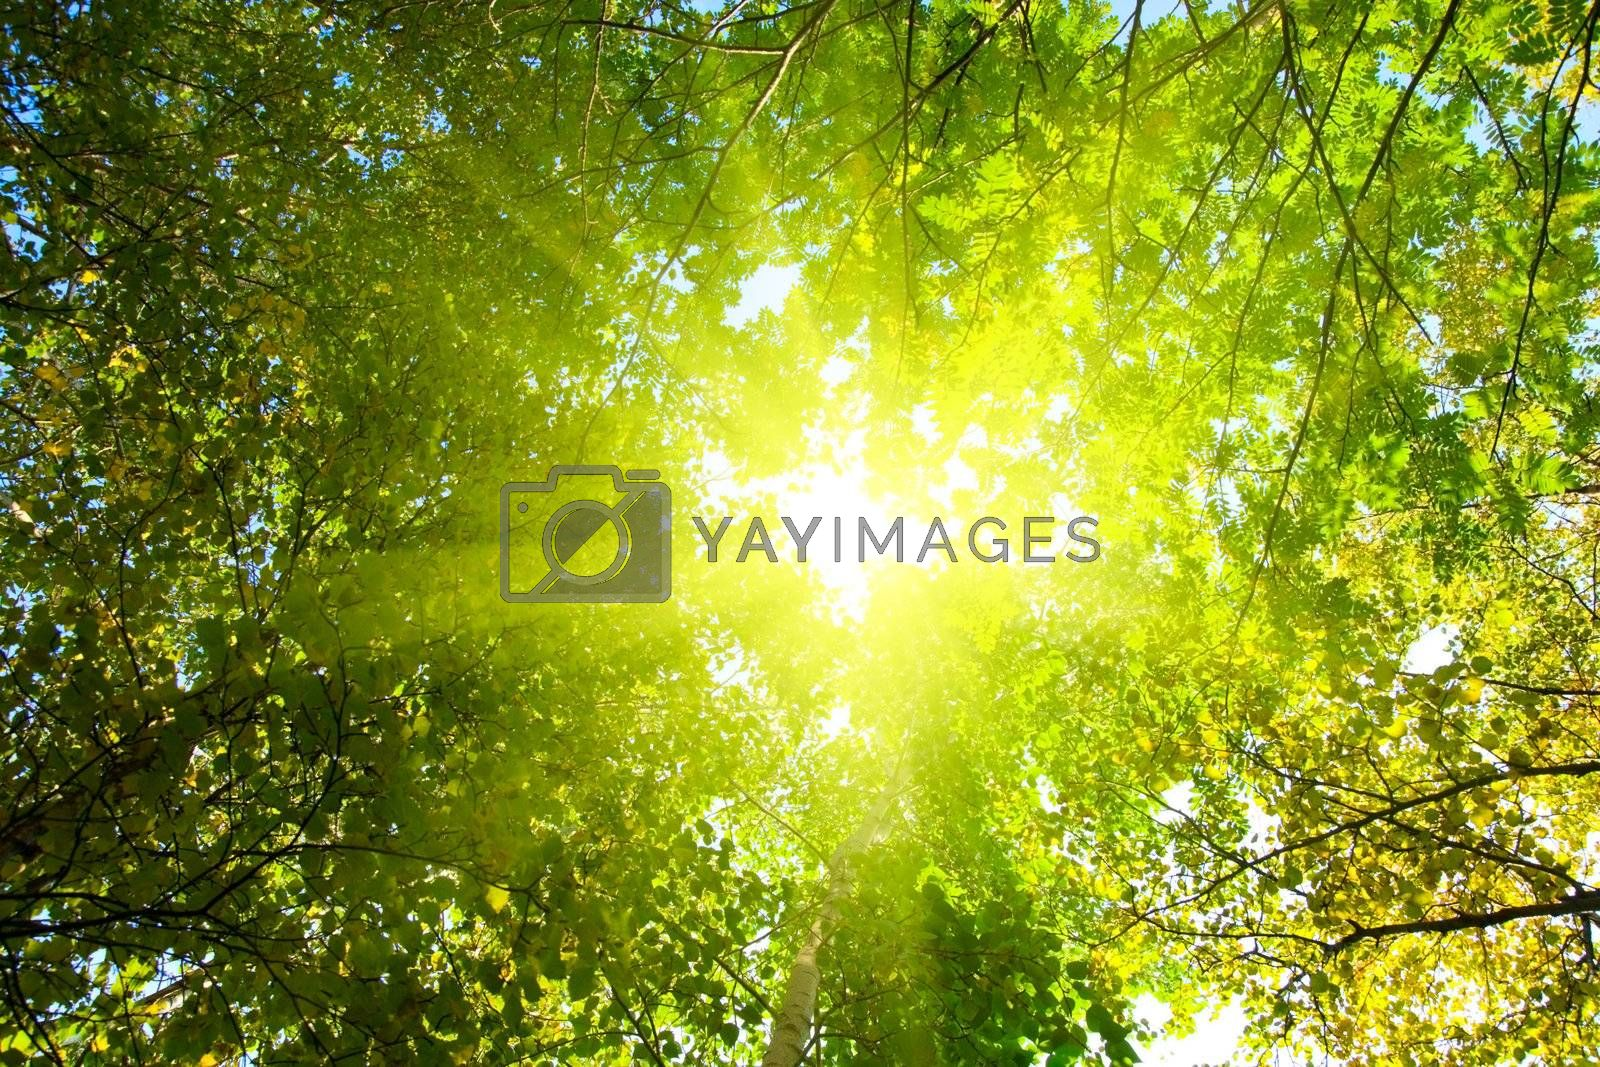 Look below, can be seen as a glimpse of the sun passes through the leaves